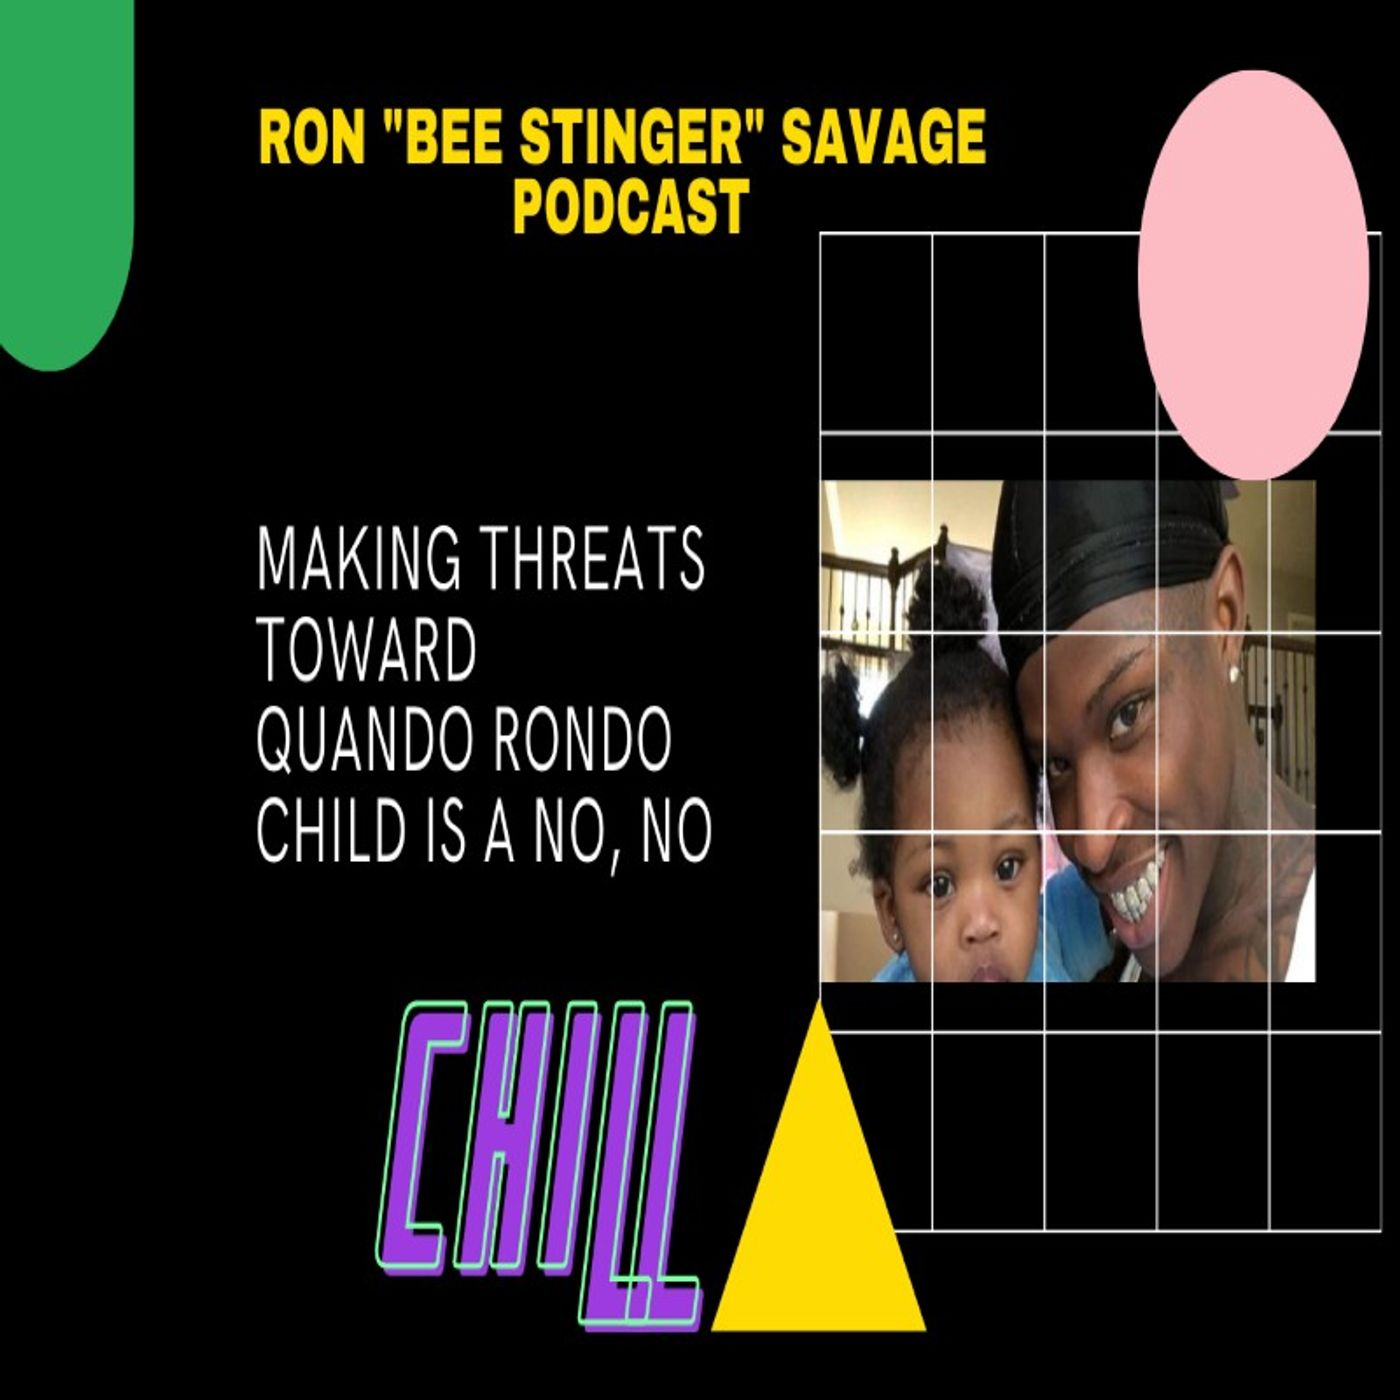 Episode 43 -  King Von Fans Quando Rondo Child Is Off Limits